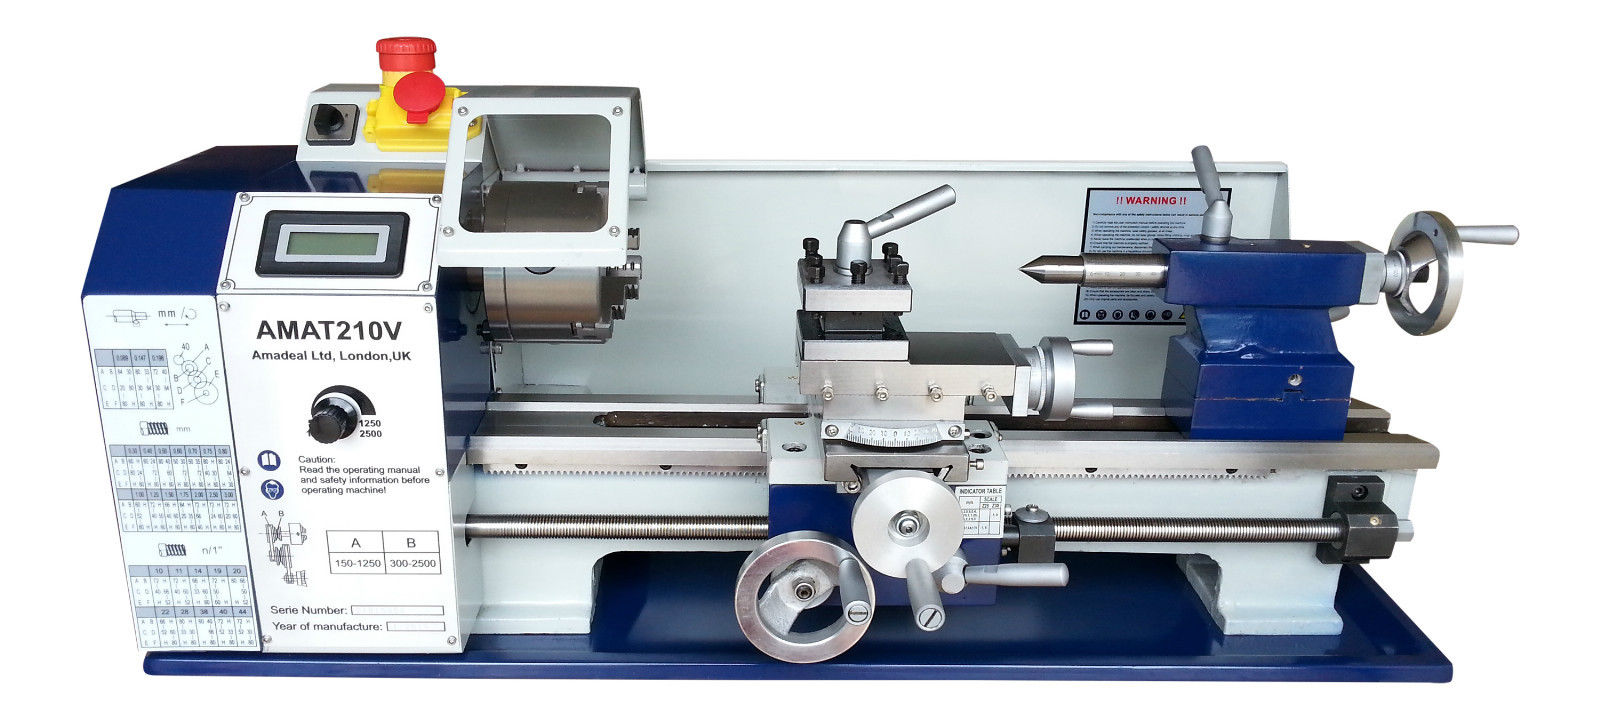 The Amadeal AMAT210V Bench Lathe 8x16 Package One